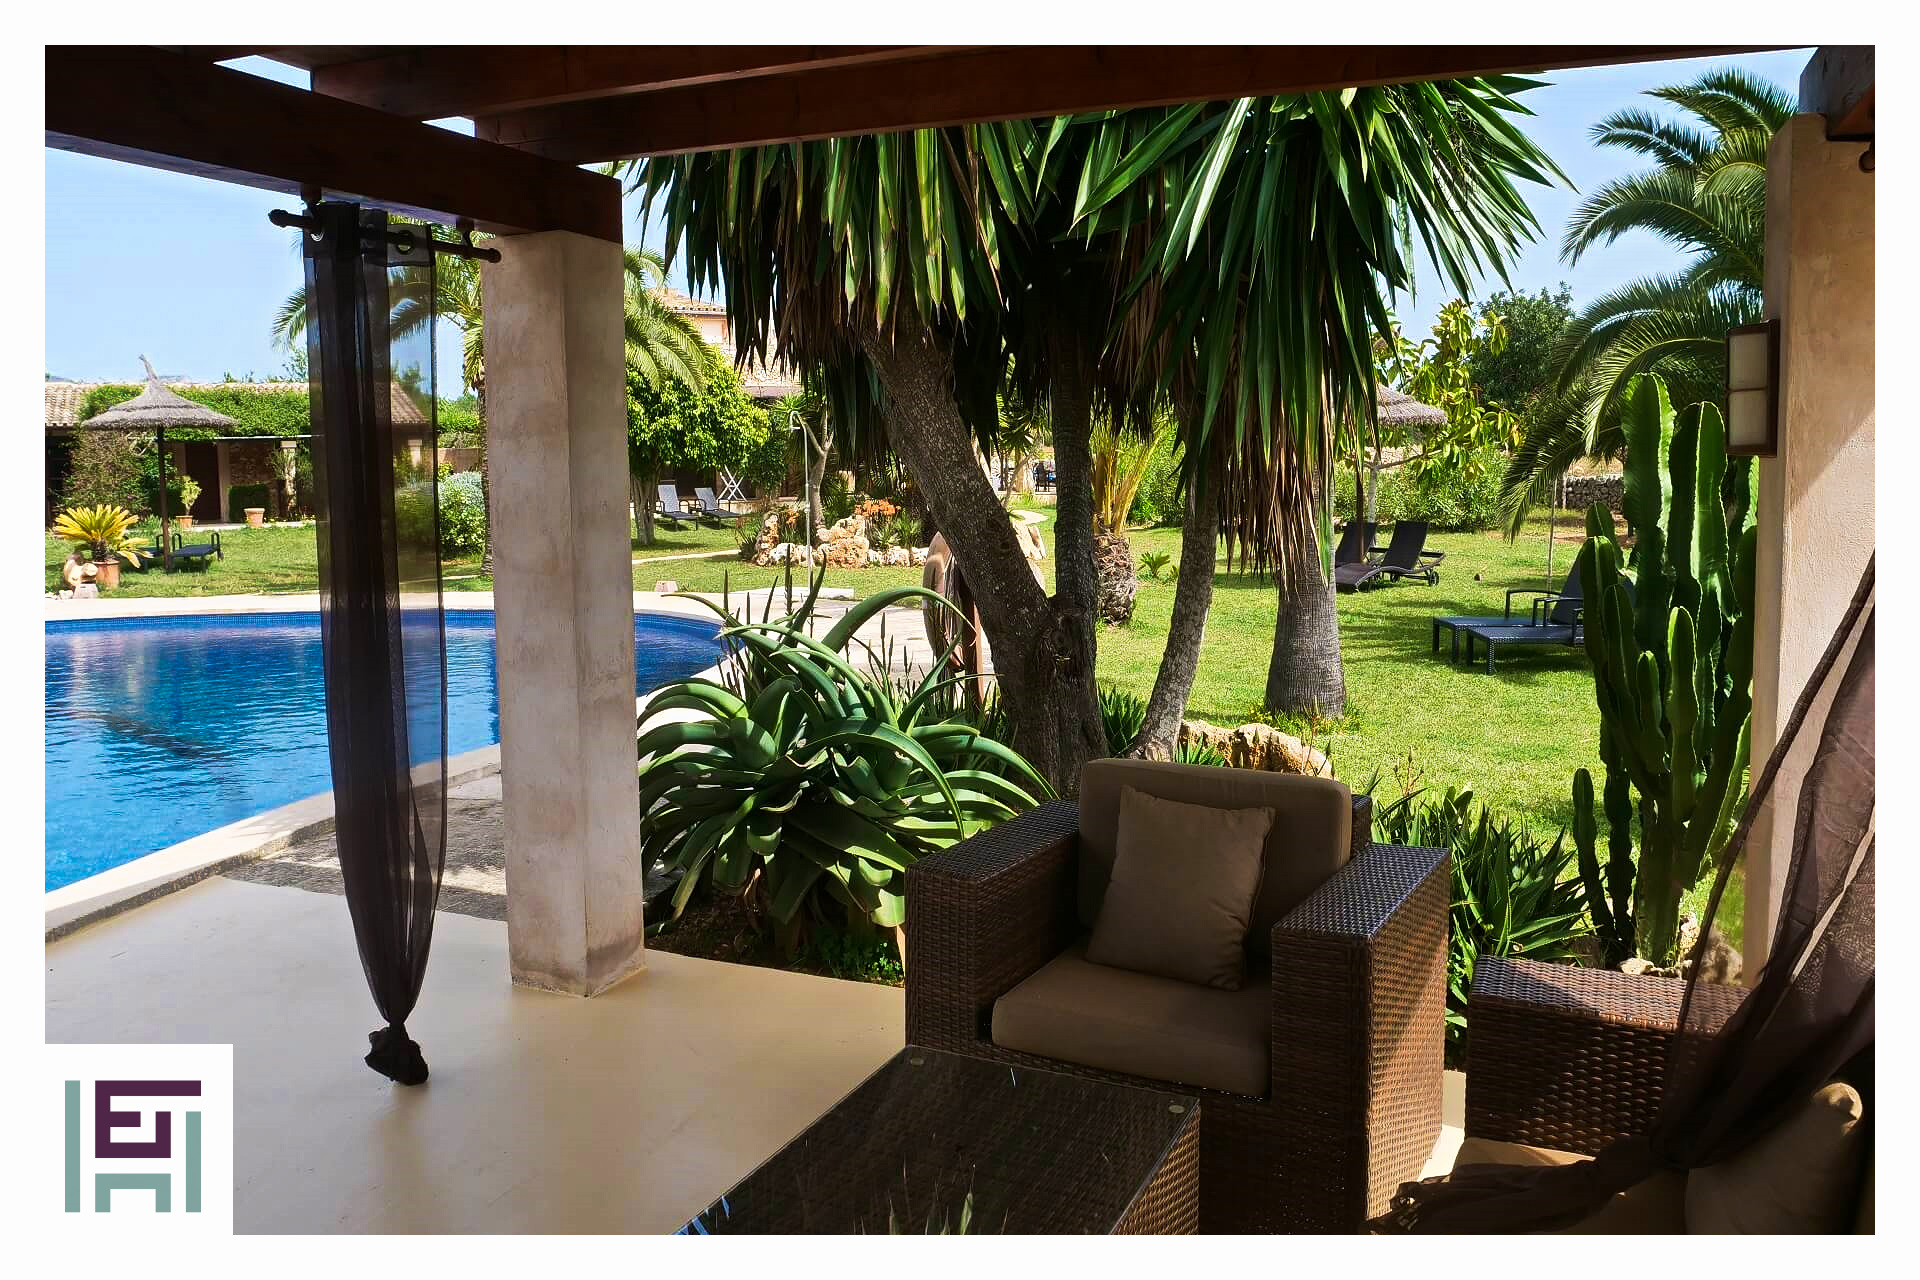 Finca-Hotel Sa Tanca - Chill-Out